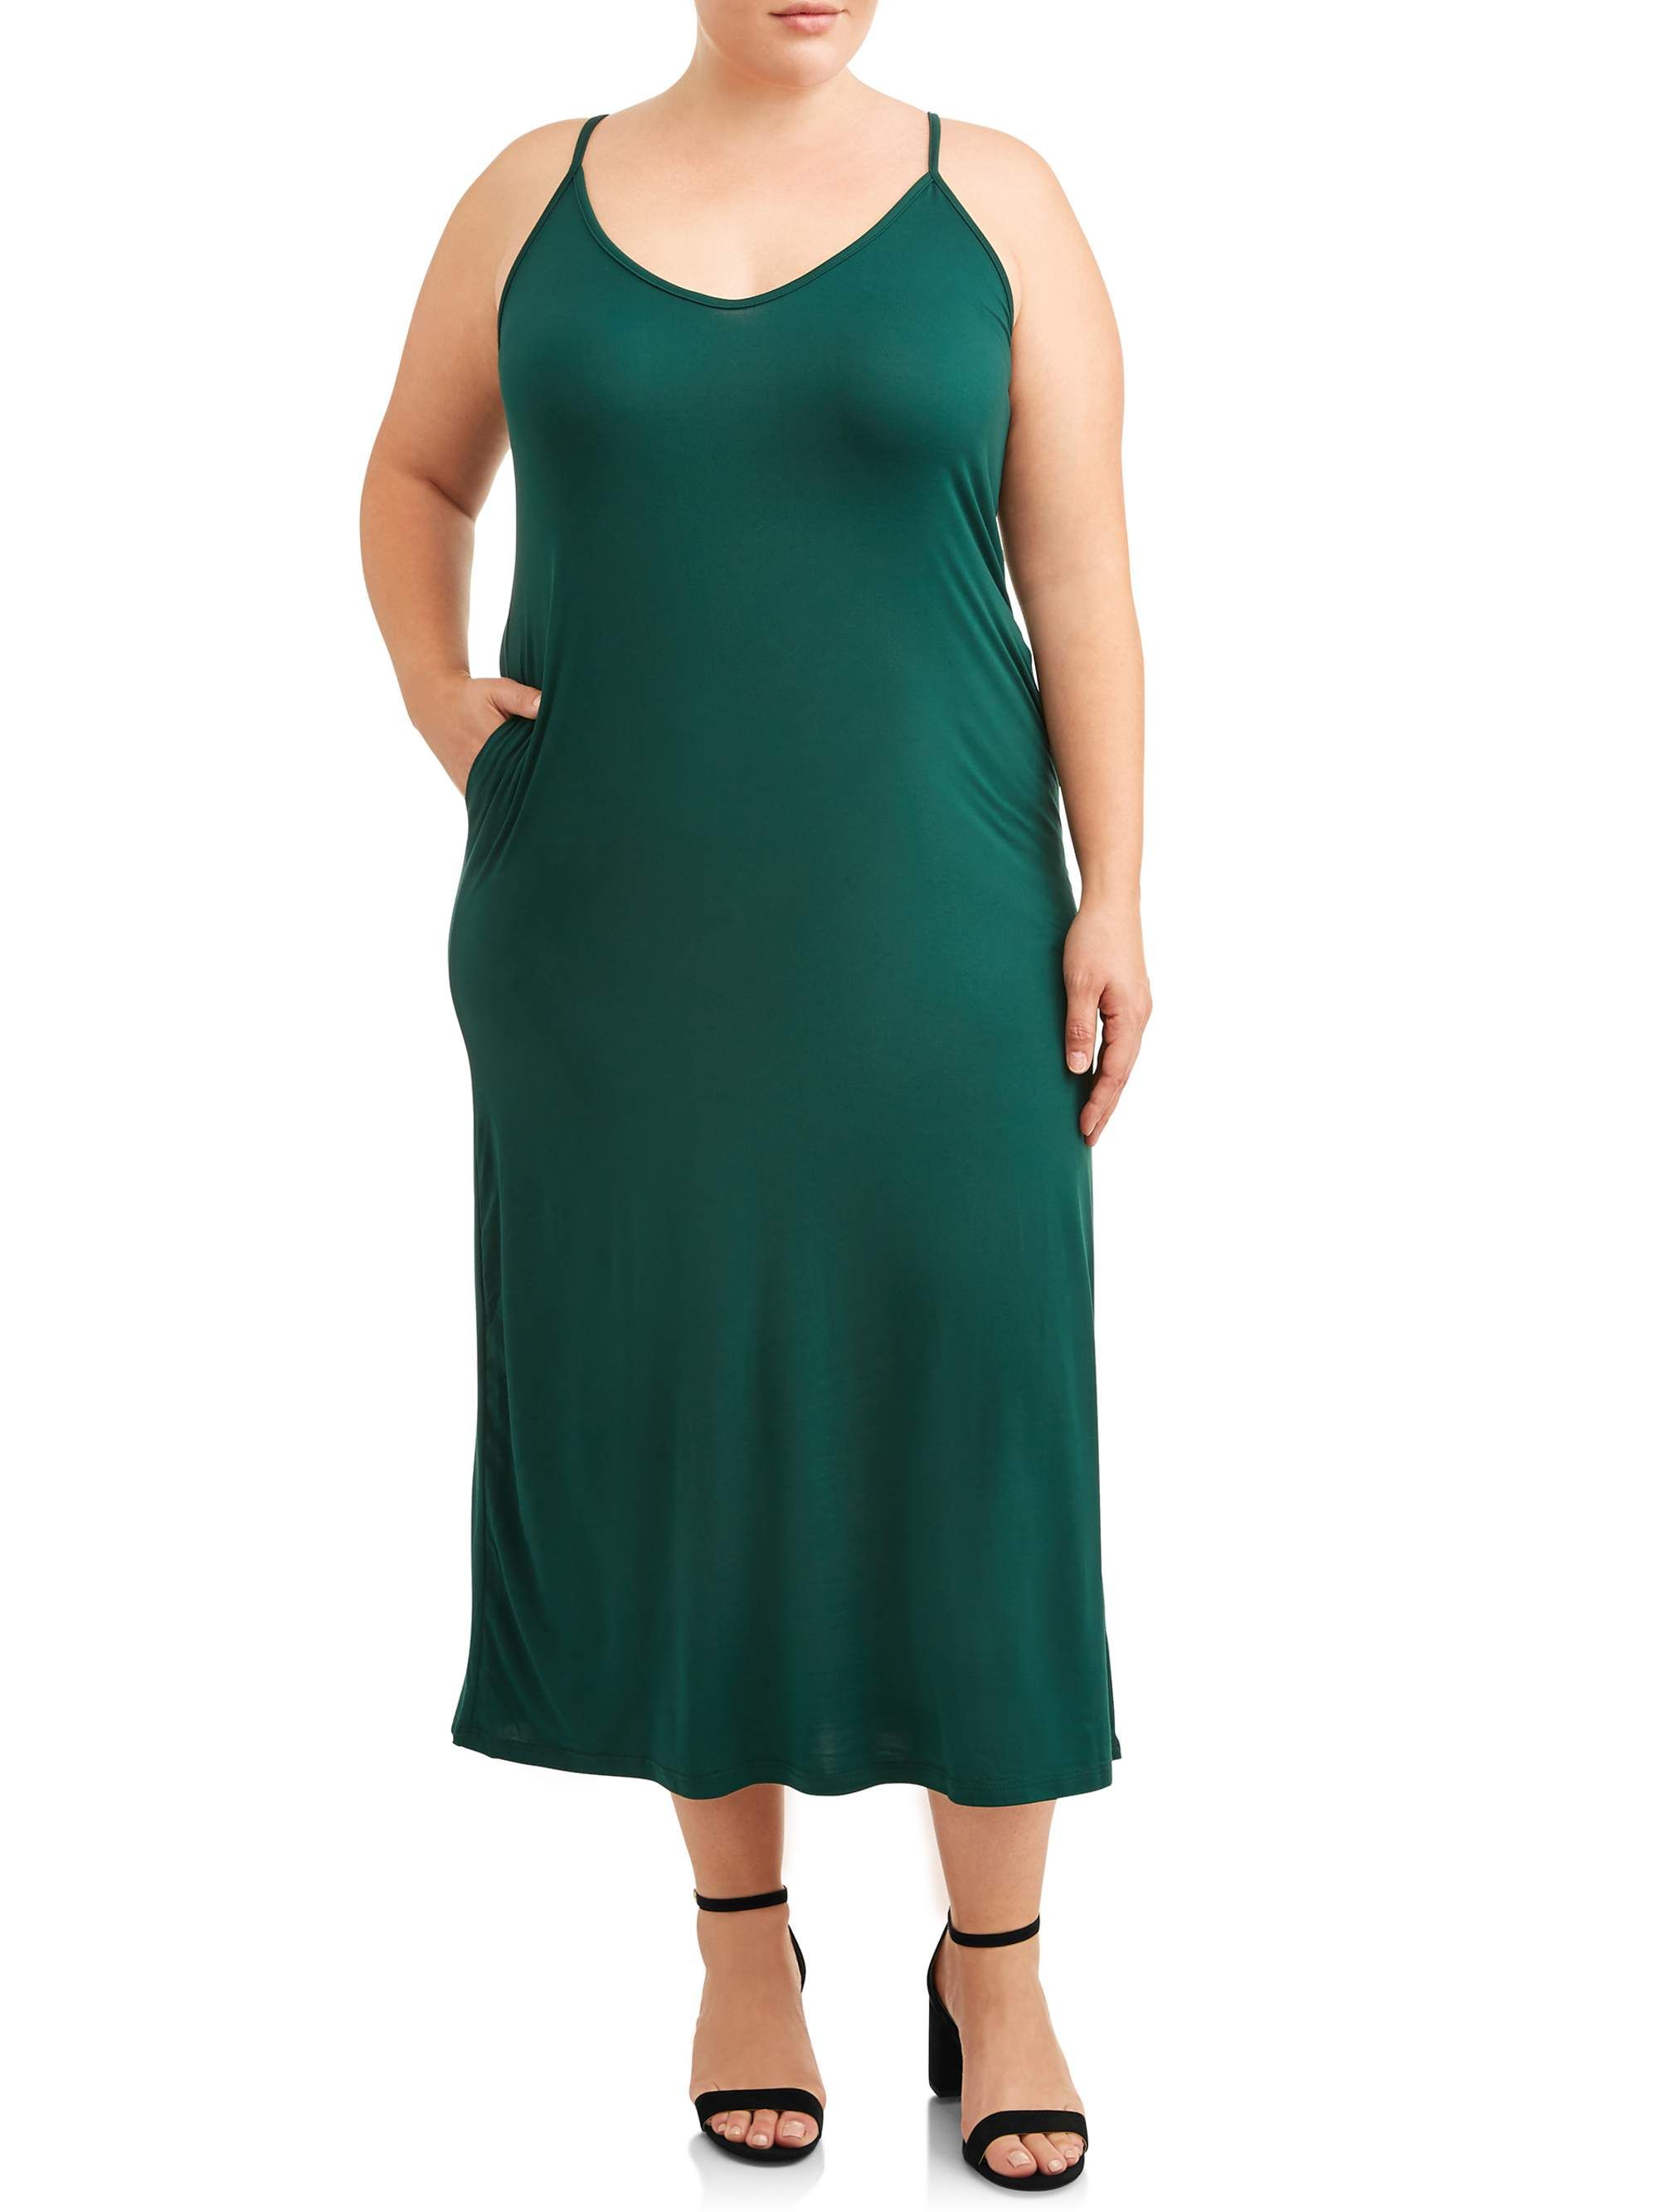 Free Shipping On Orders Over 35 Buy Love Sadie Women S Plus Size Maxi Dress With Pockets At Walmart Com Stylish Maxi Dress Plus Size Maxi Dresses Maxi Dress [ 2667 x 2000 Pixel ]